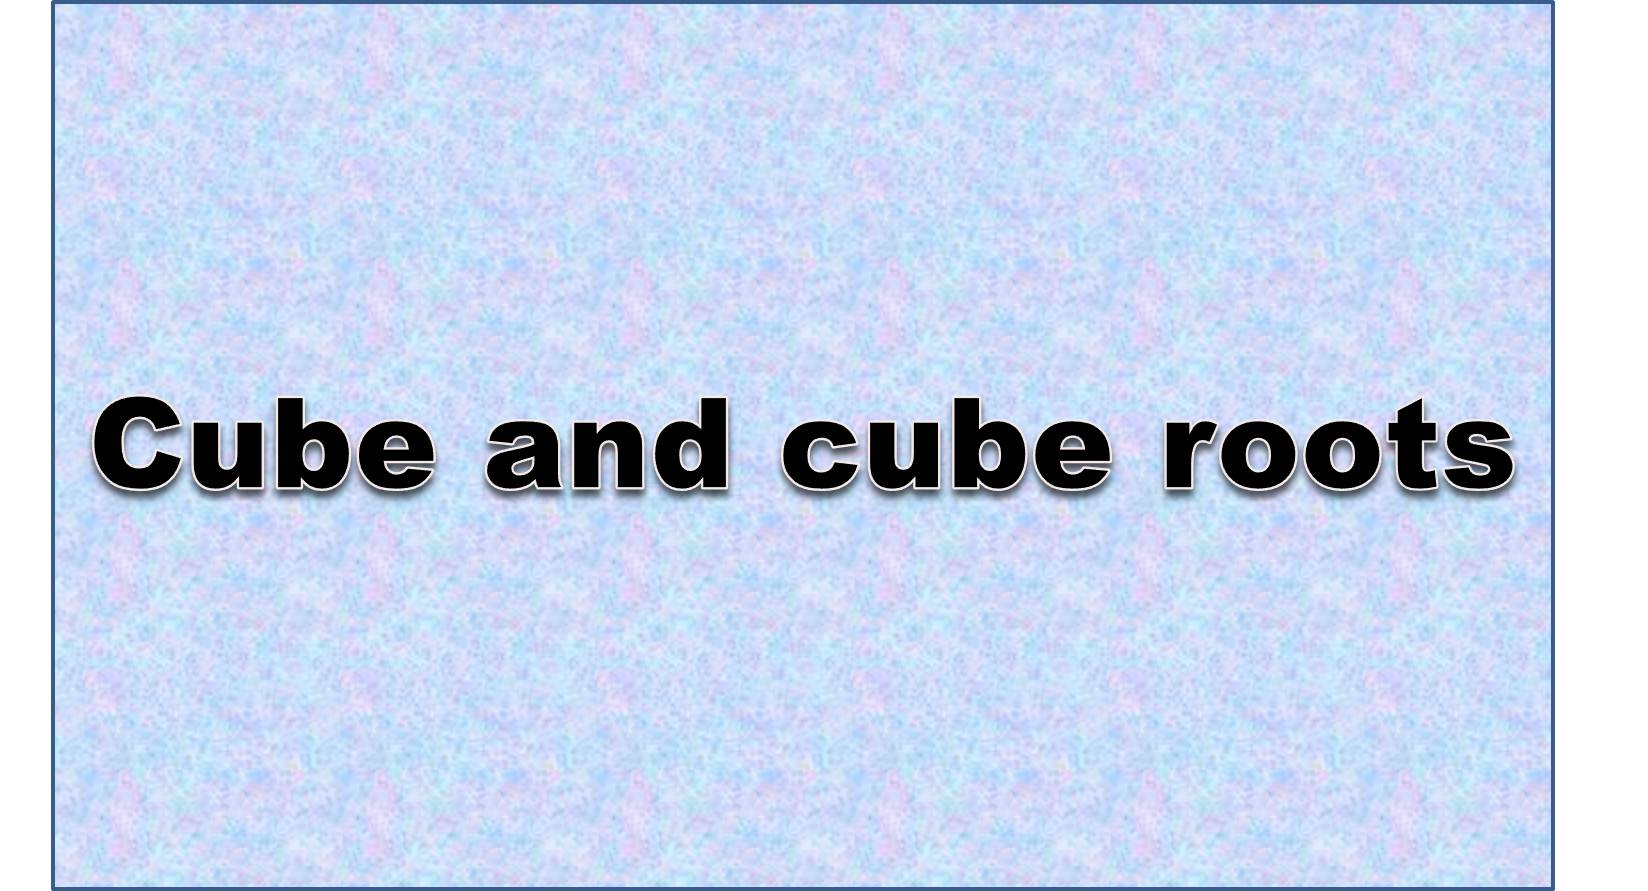 http://study.aisectonline.com/images/Worked example-cube root of a negative number.jpg